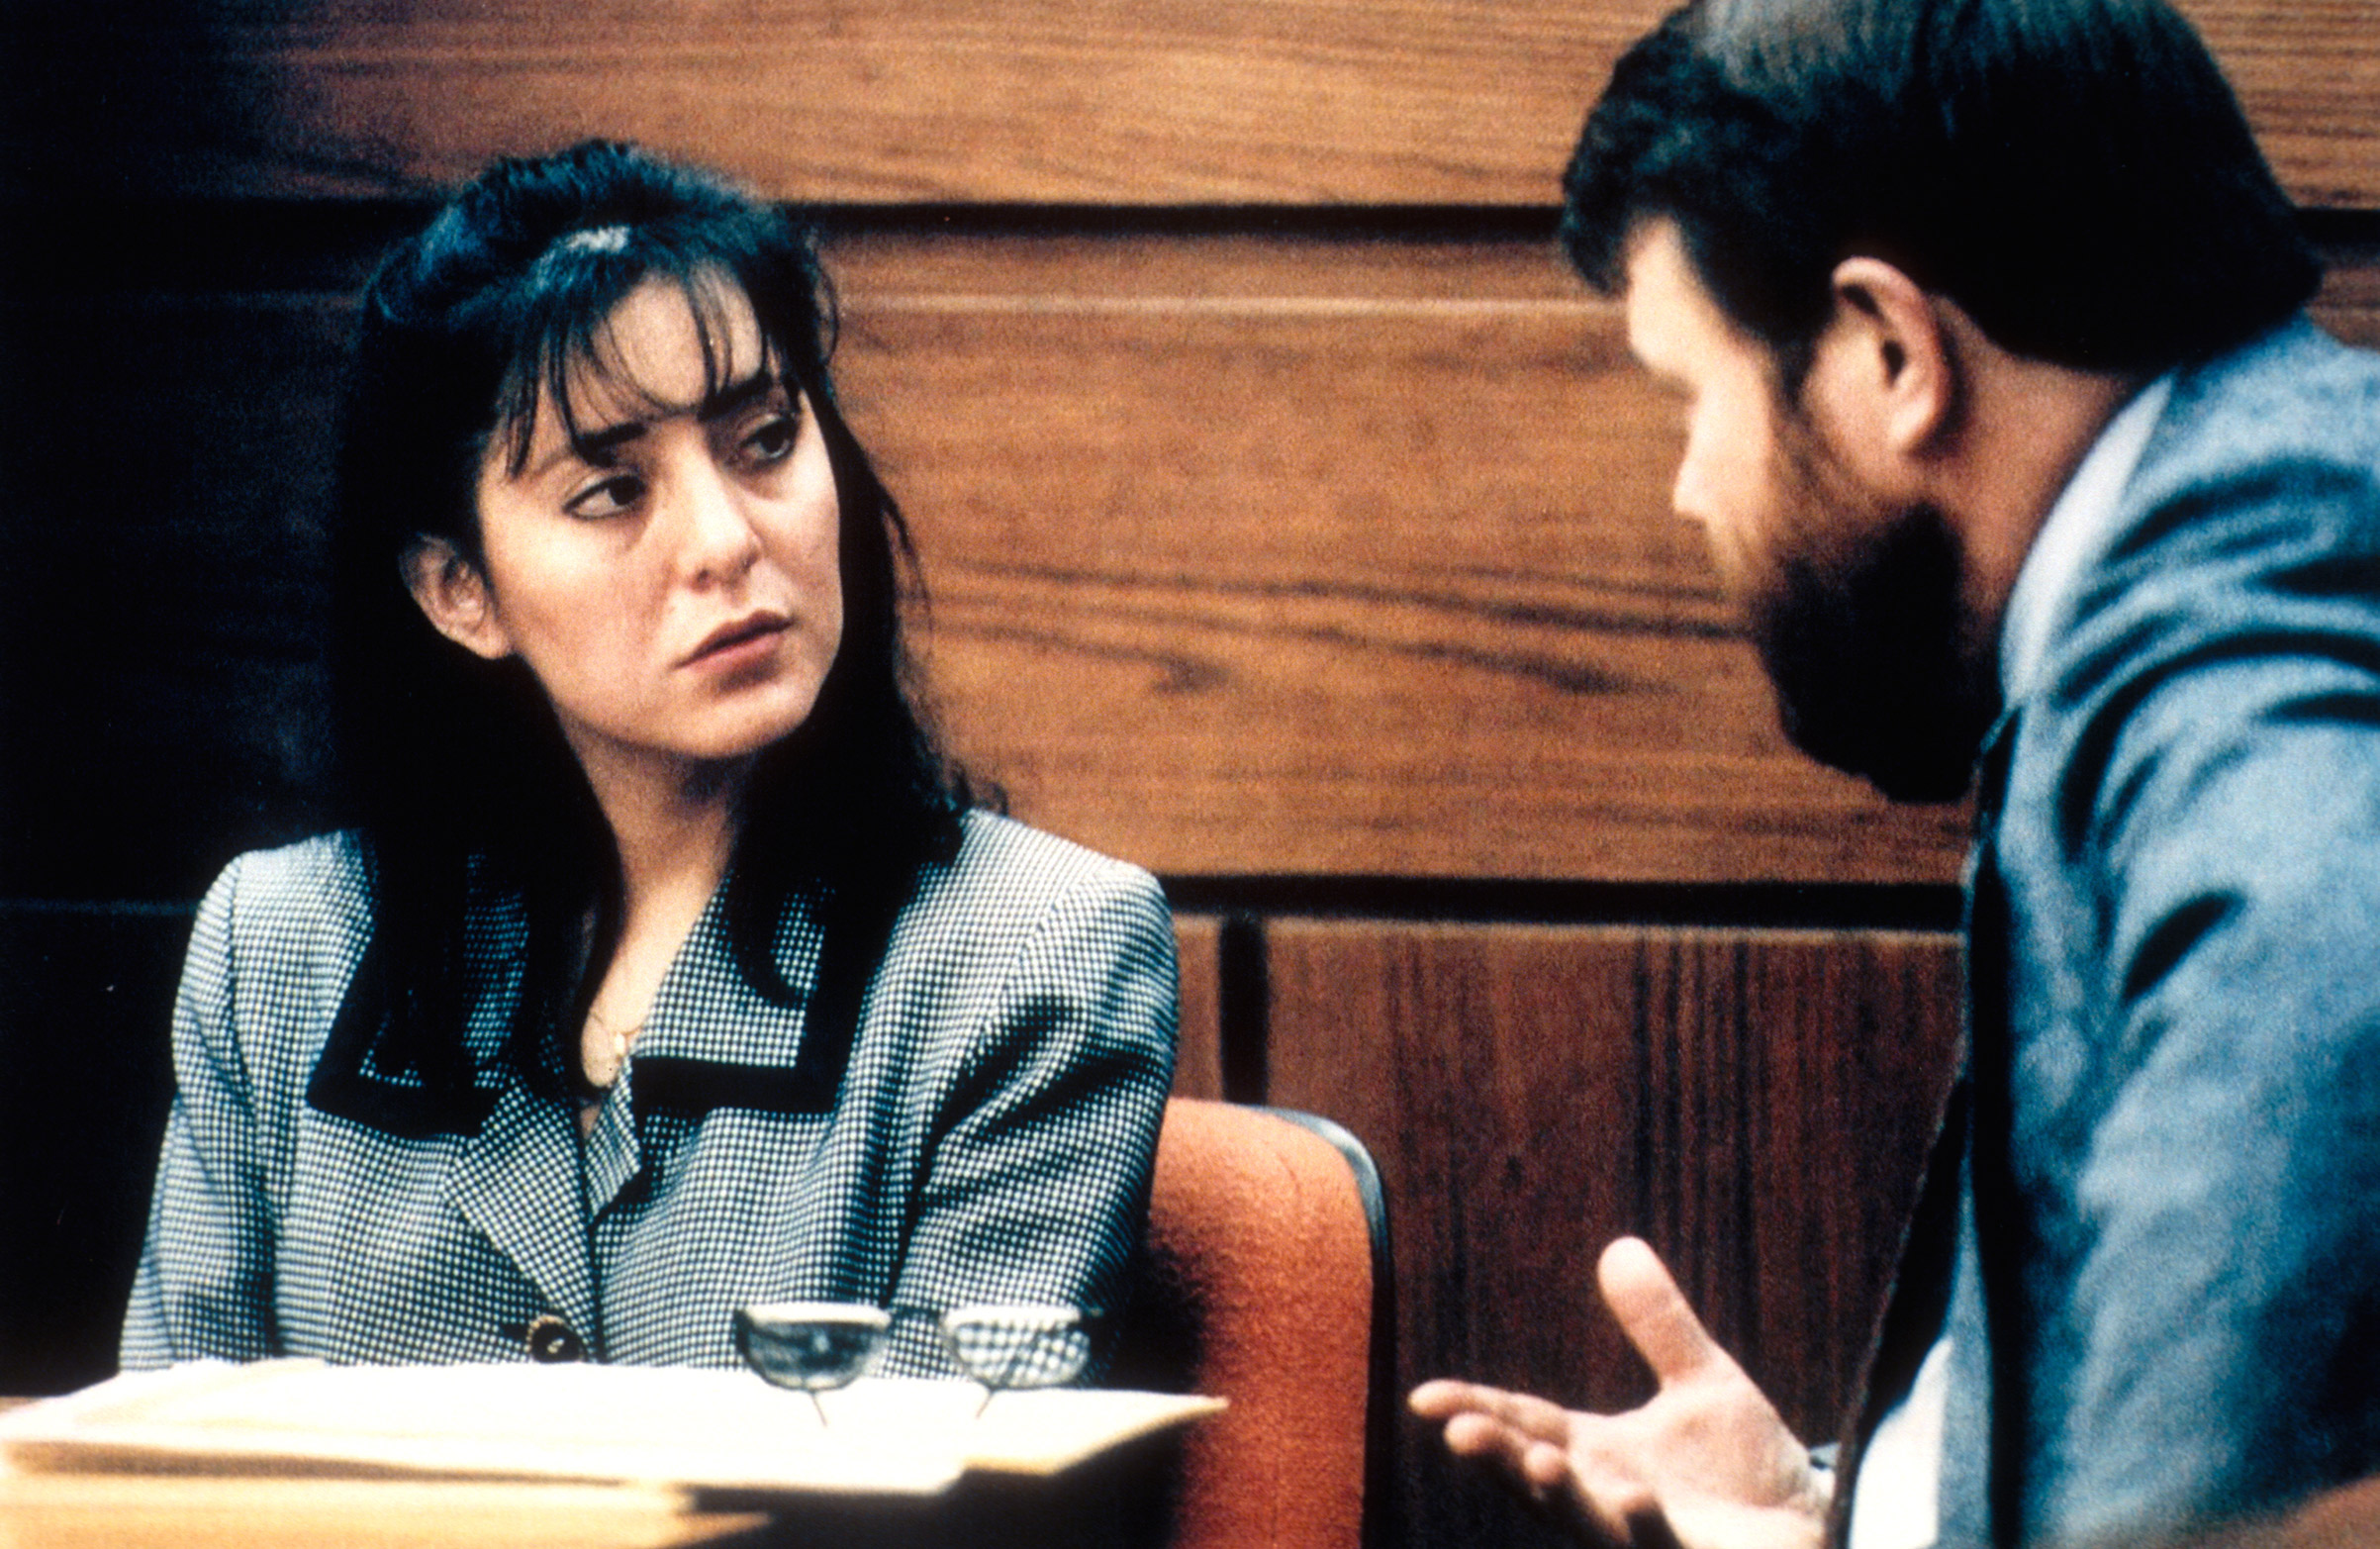 Lorena Bobbitt is questioned by an attorney during her trial 	on Jan. 10, 1994, where she is charged with 'malicious wounding' after cutting off her husband's penis following an alleged rape.